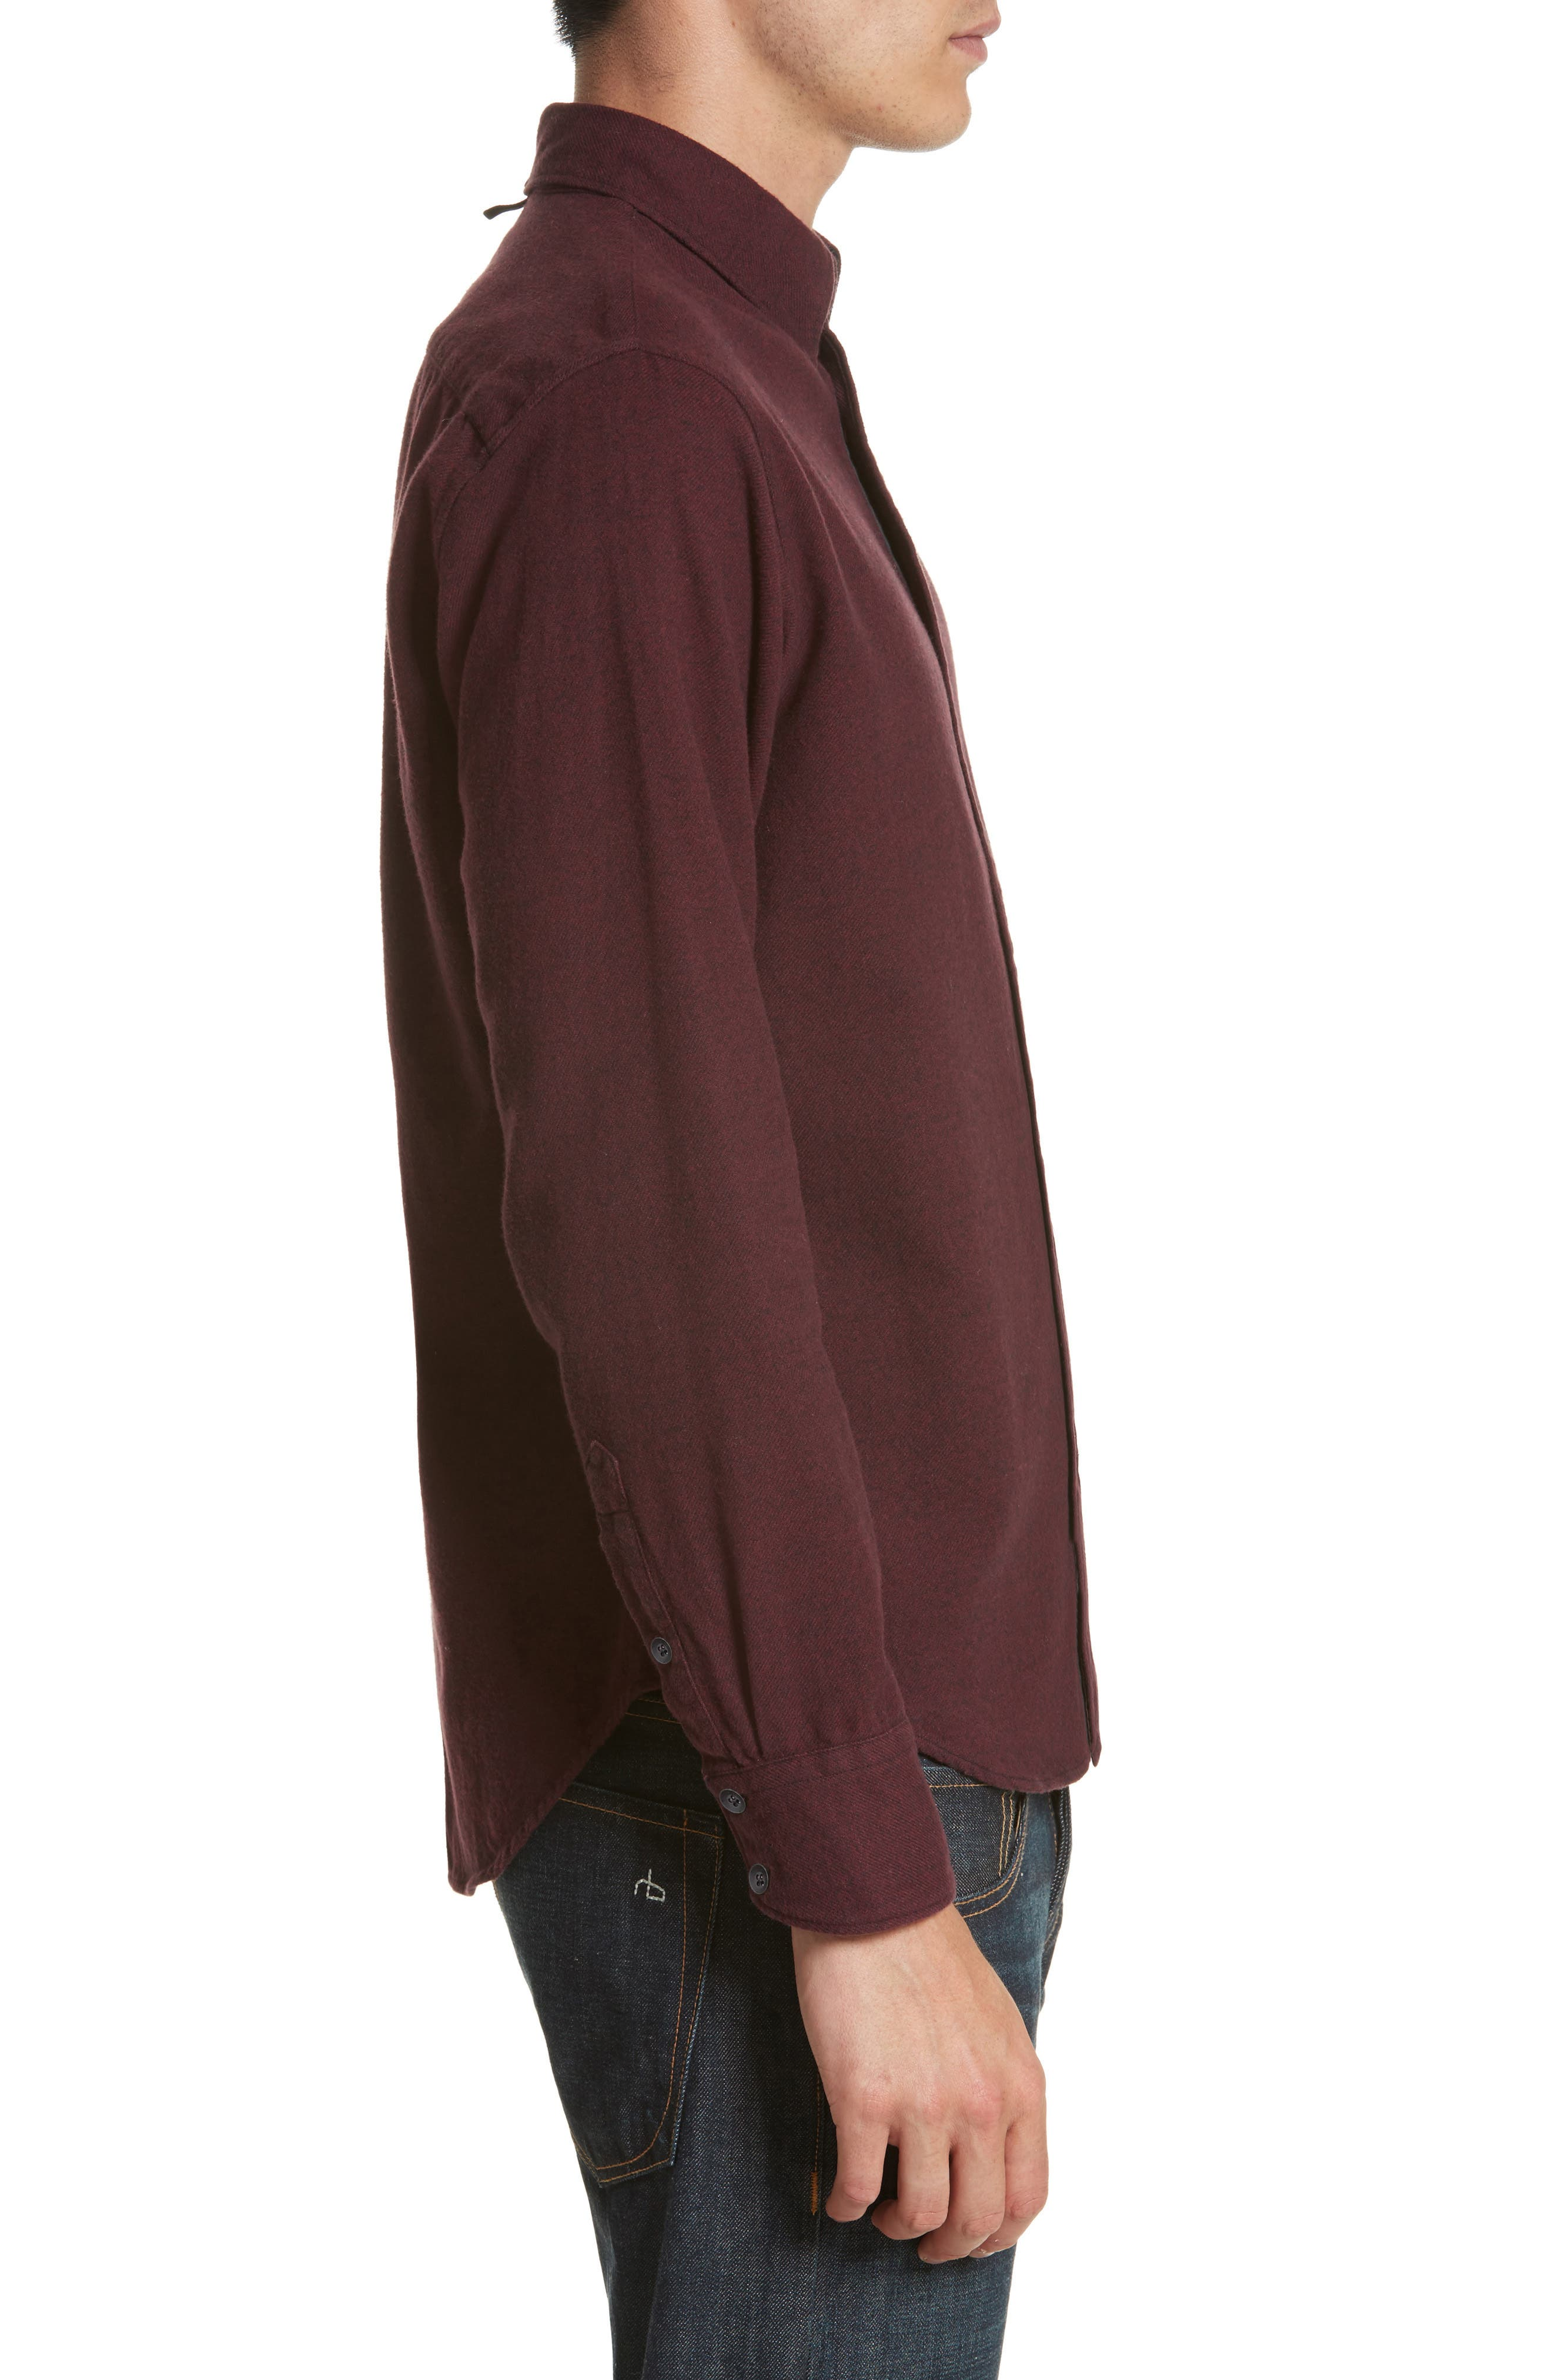 Fit 2 Base Woven Shirt,                             Alternate thumbnail 3, color,                             Burgundy